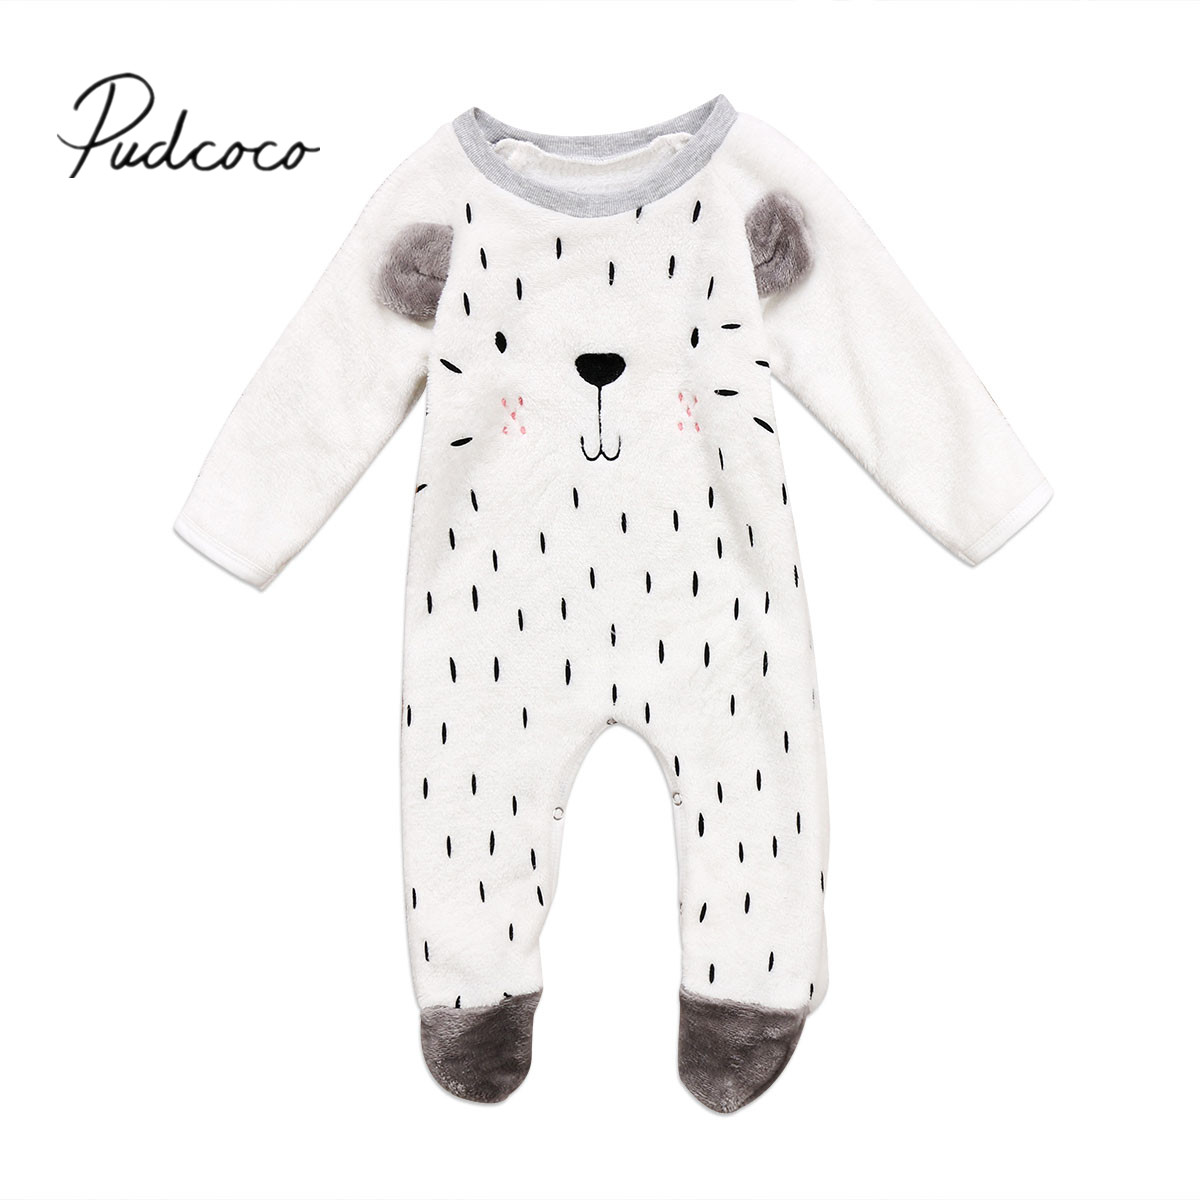 2017 Brand New Toddler Infant Kids Baby Boys Girls Fluffy Animal Long Sleeve Romper Jumpsuit Clothes Fall Winter Warm set puseky 2017 infant romper baby boys girls jumpsuit newborn bebe clothing hooded toddler baby clothes cute panda romper costumes